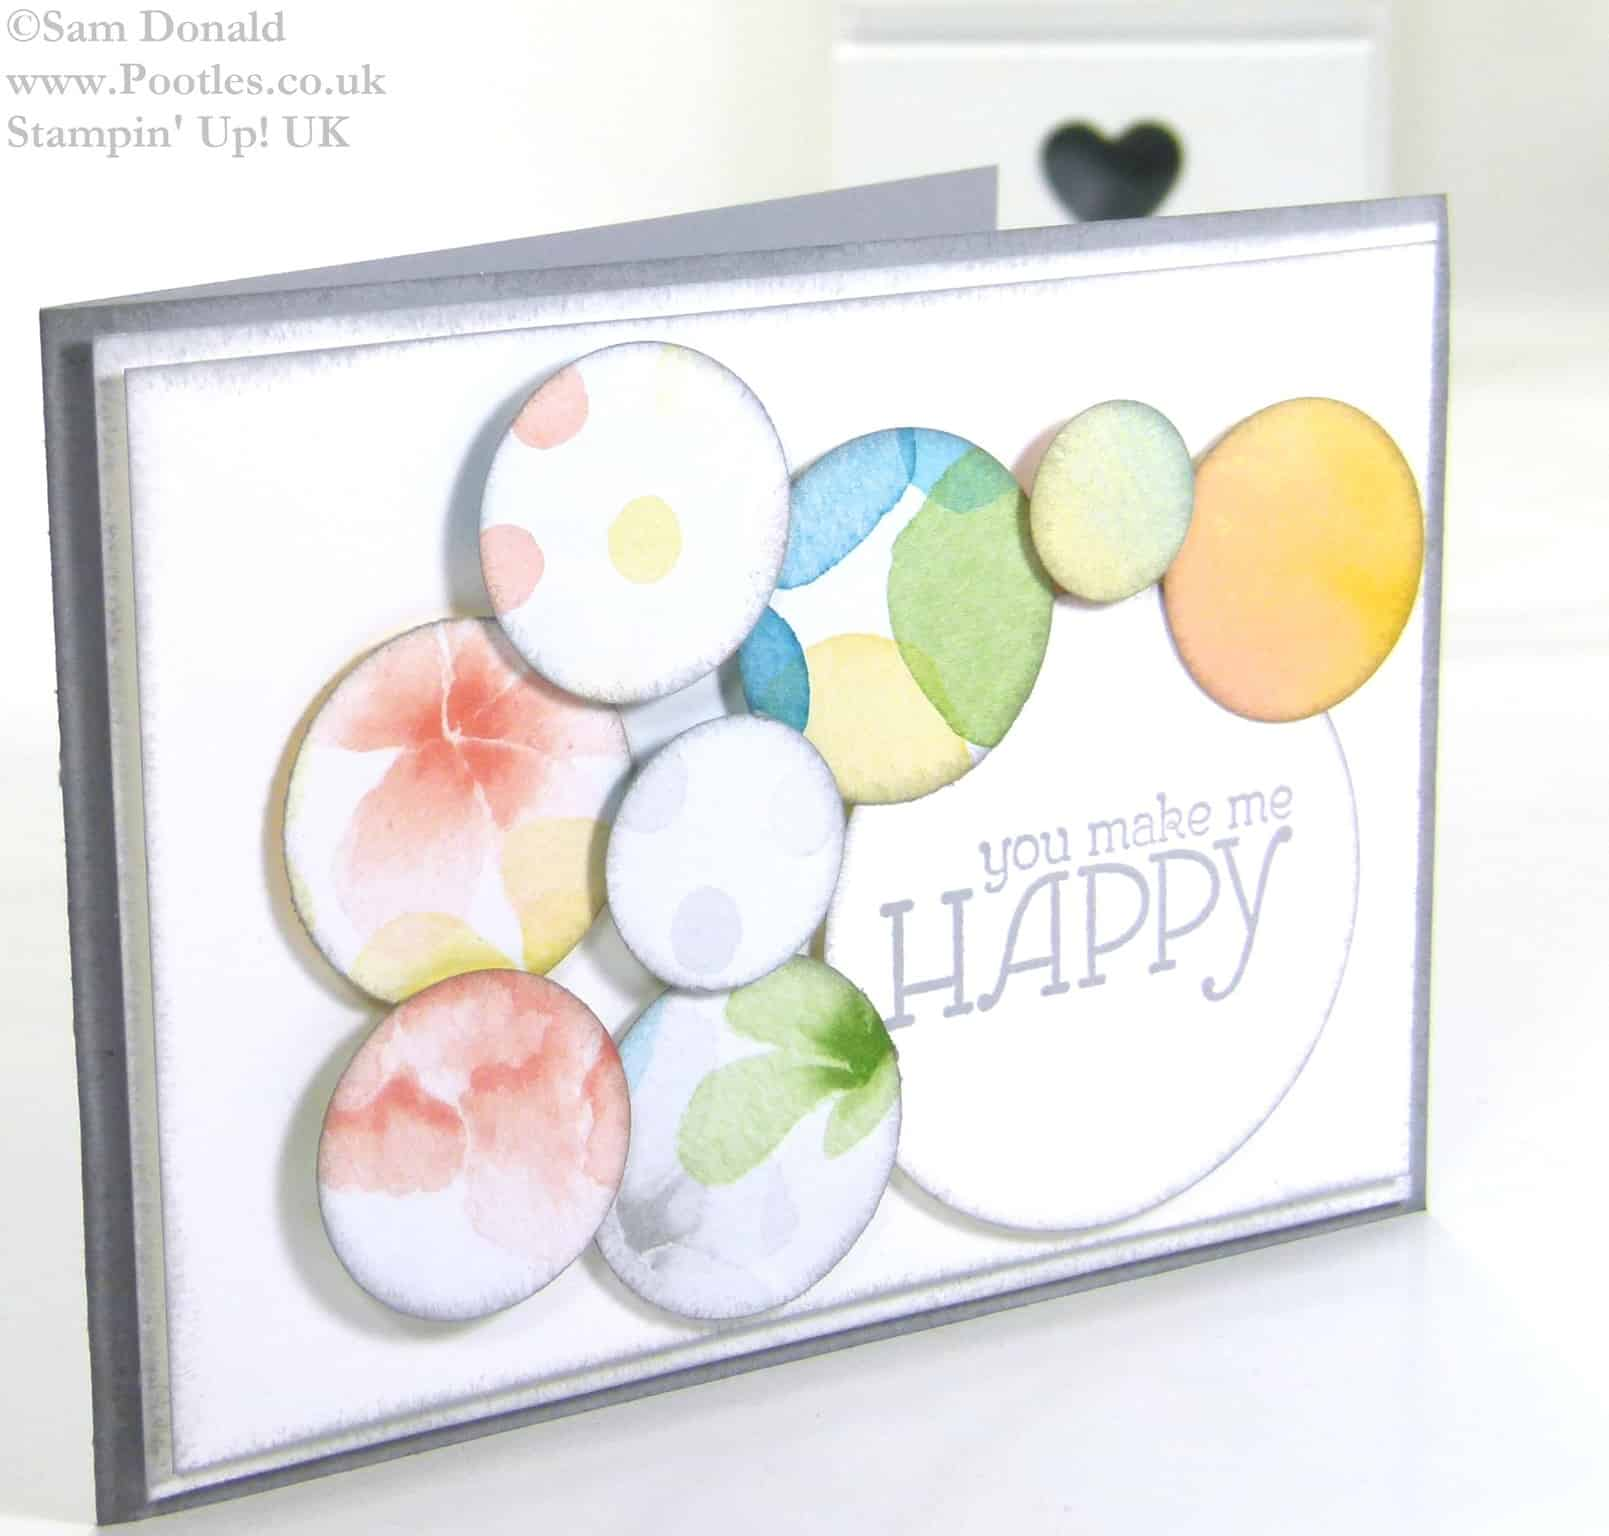 POOTLES Stampin' Up! UK Watercolour Wonder You Make Me Happy 2